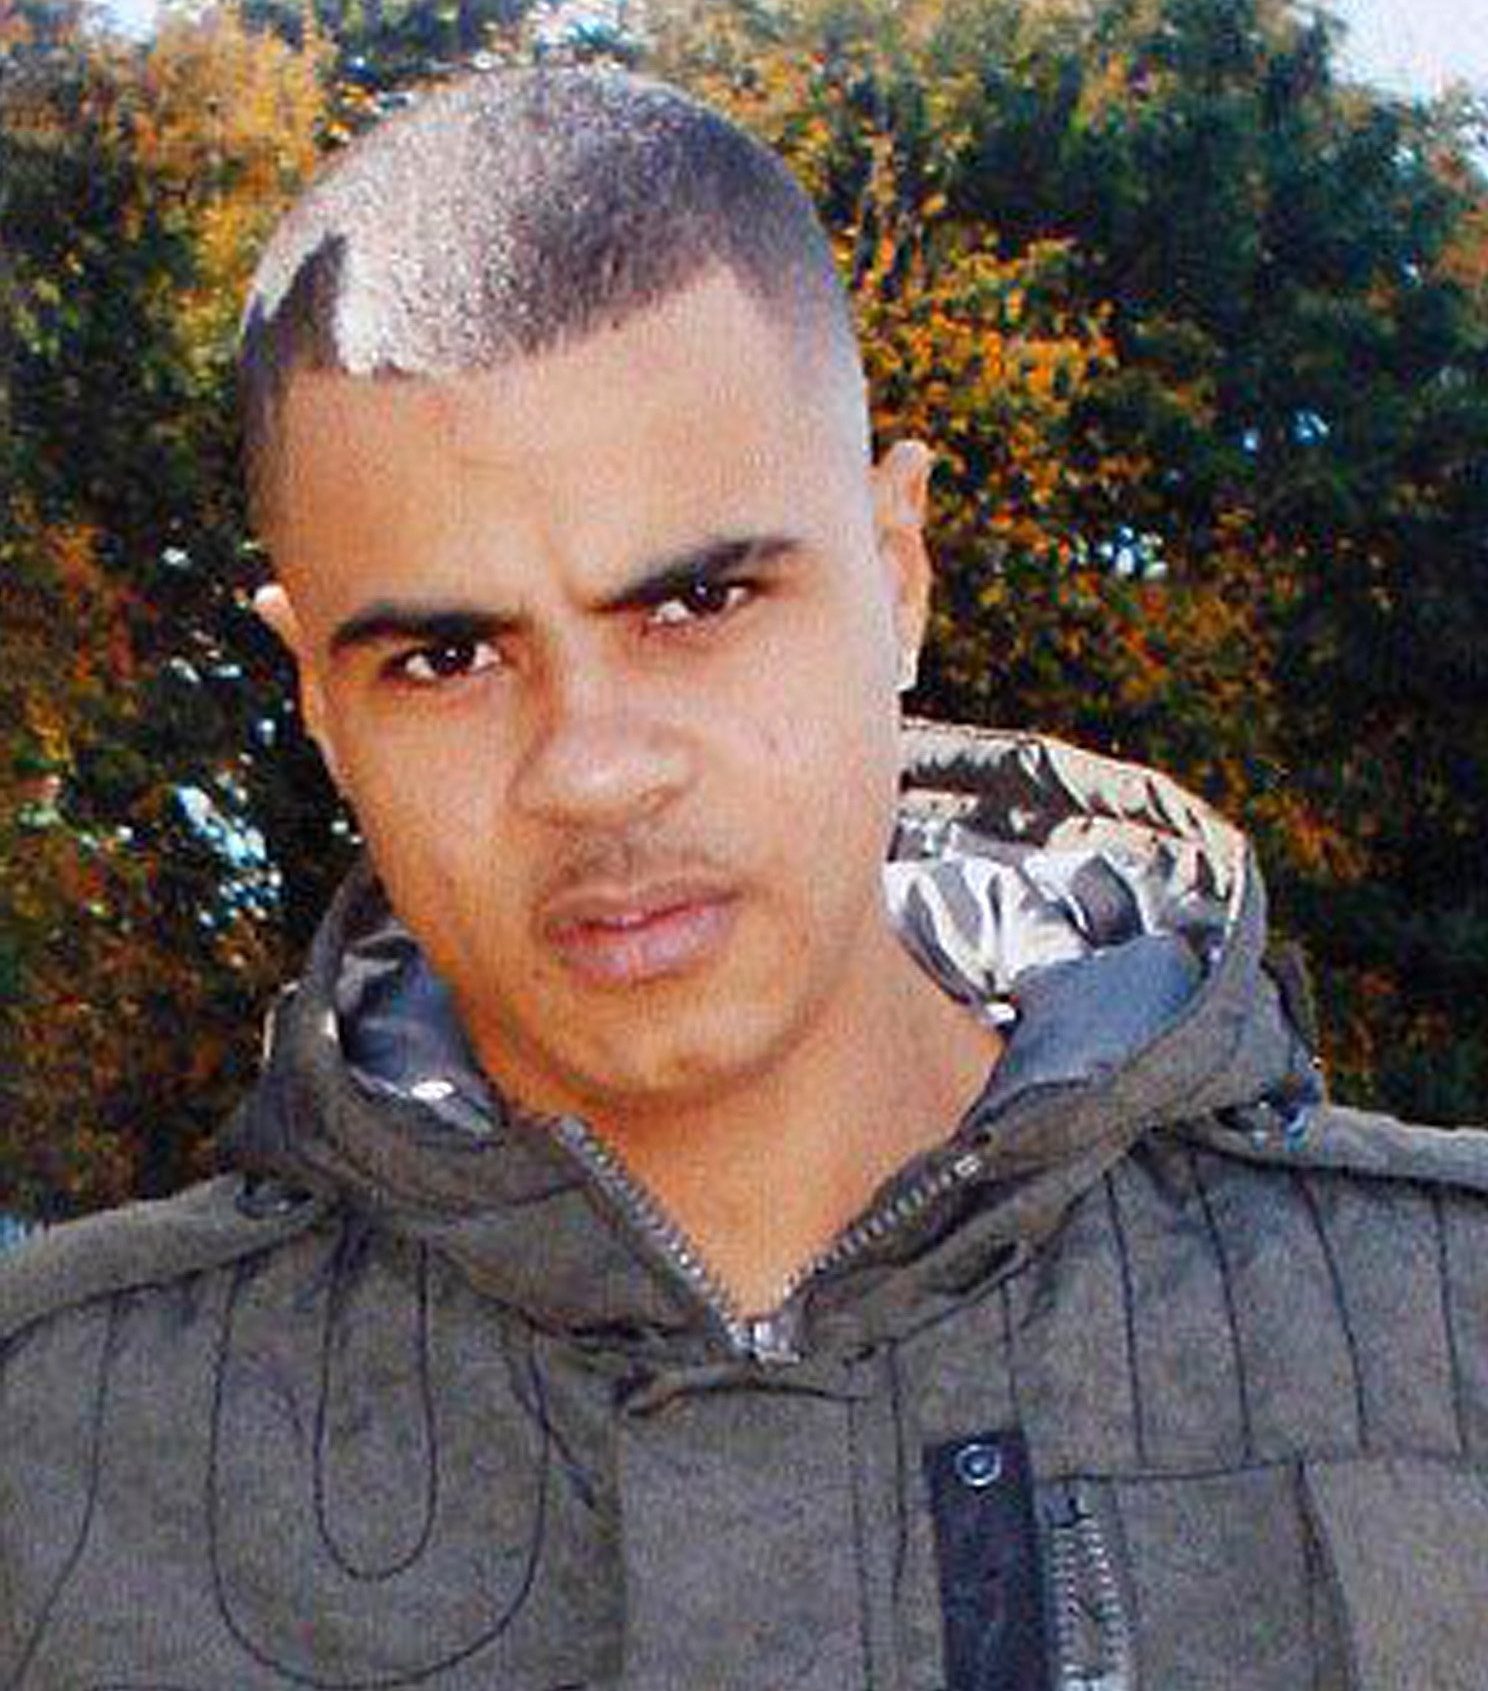 Mark Duggan the man whose shooting by police sparked the Tottenham riots, London, Britain - 06 Aug 2011